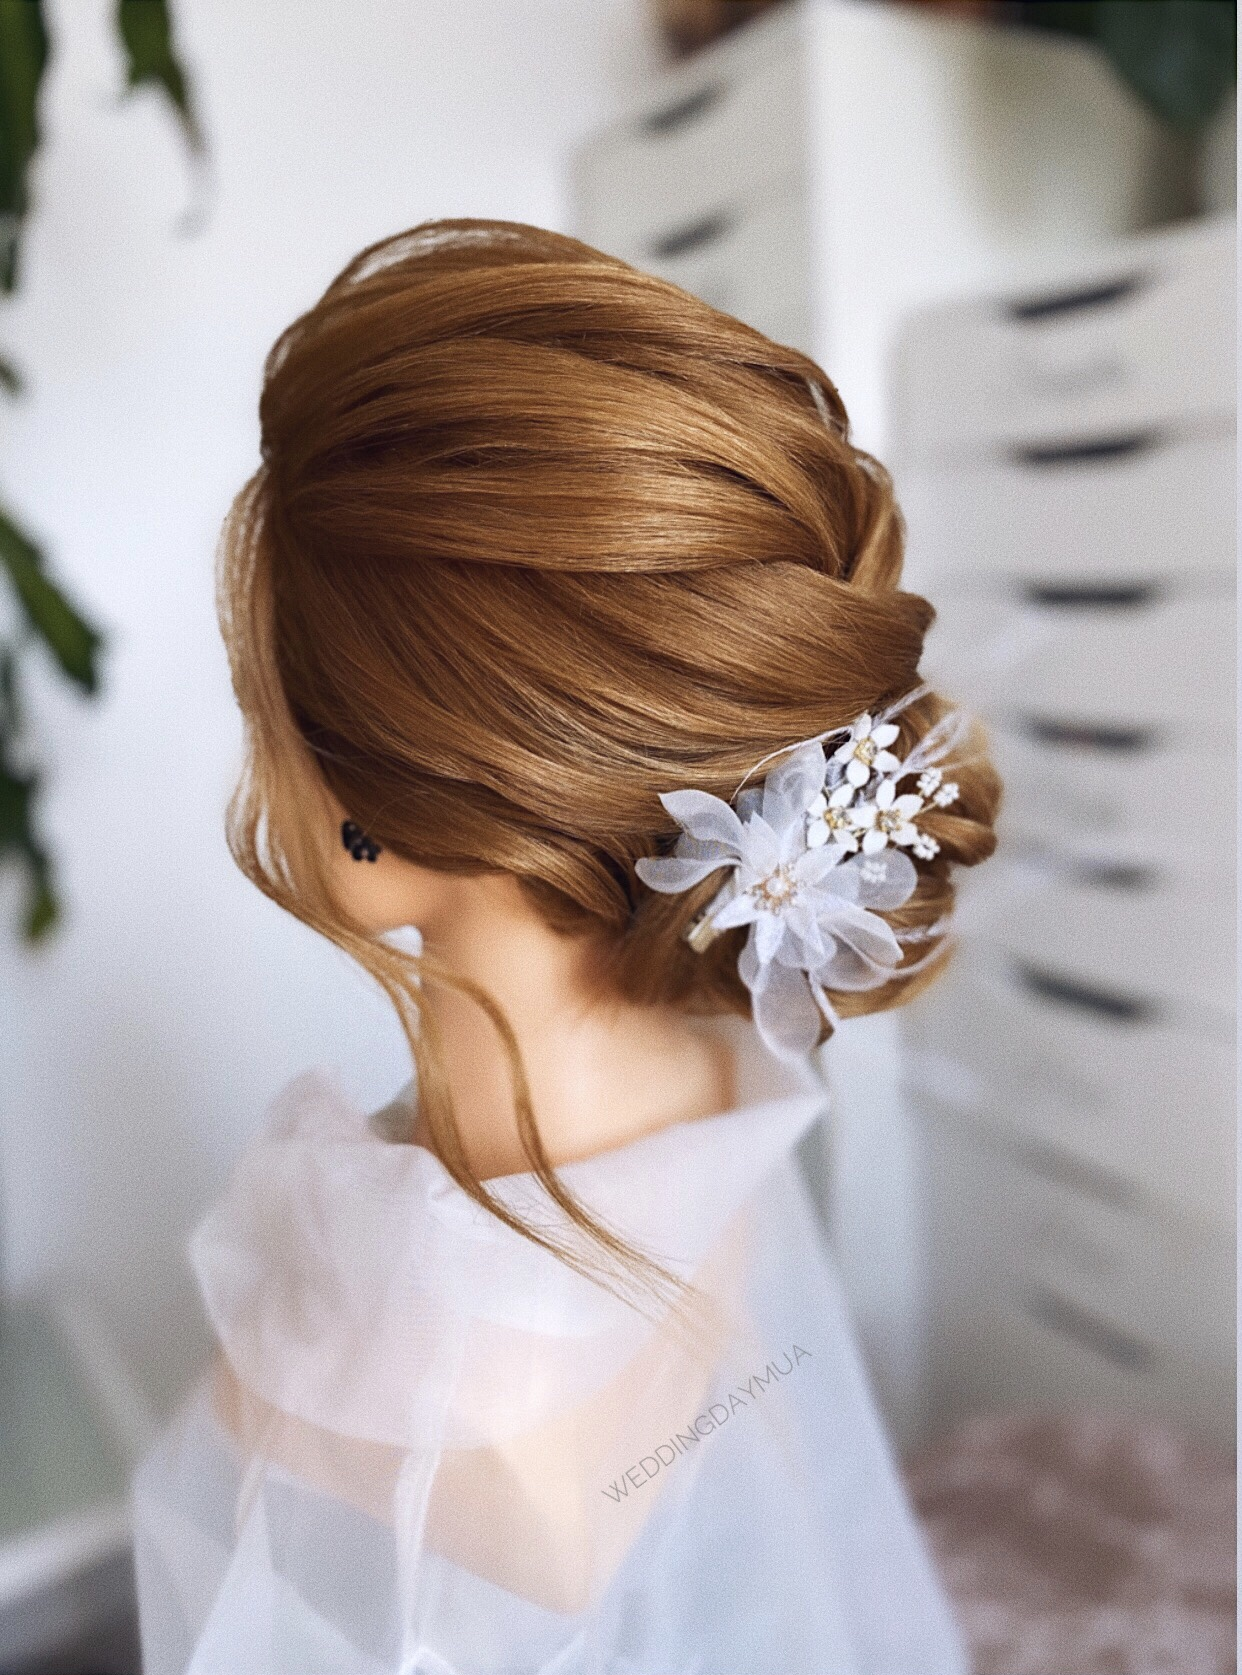 BEST WEDDING HAIRSTYLIST